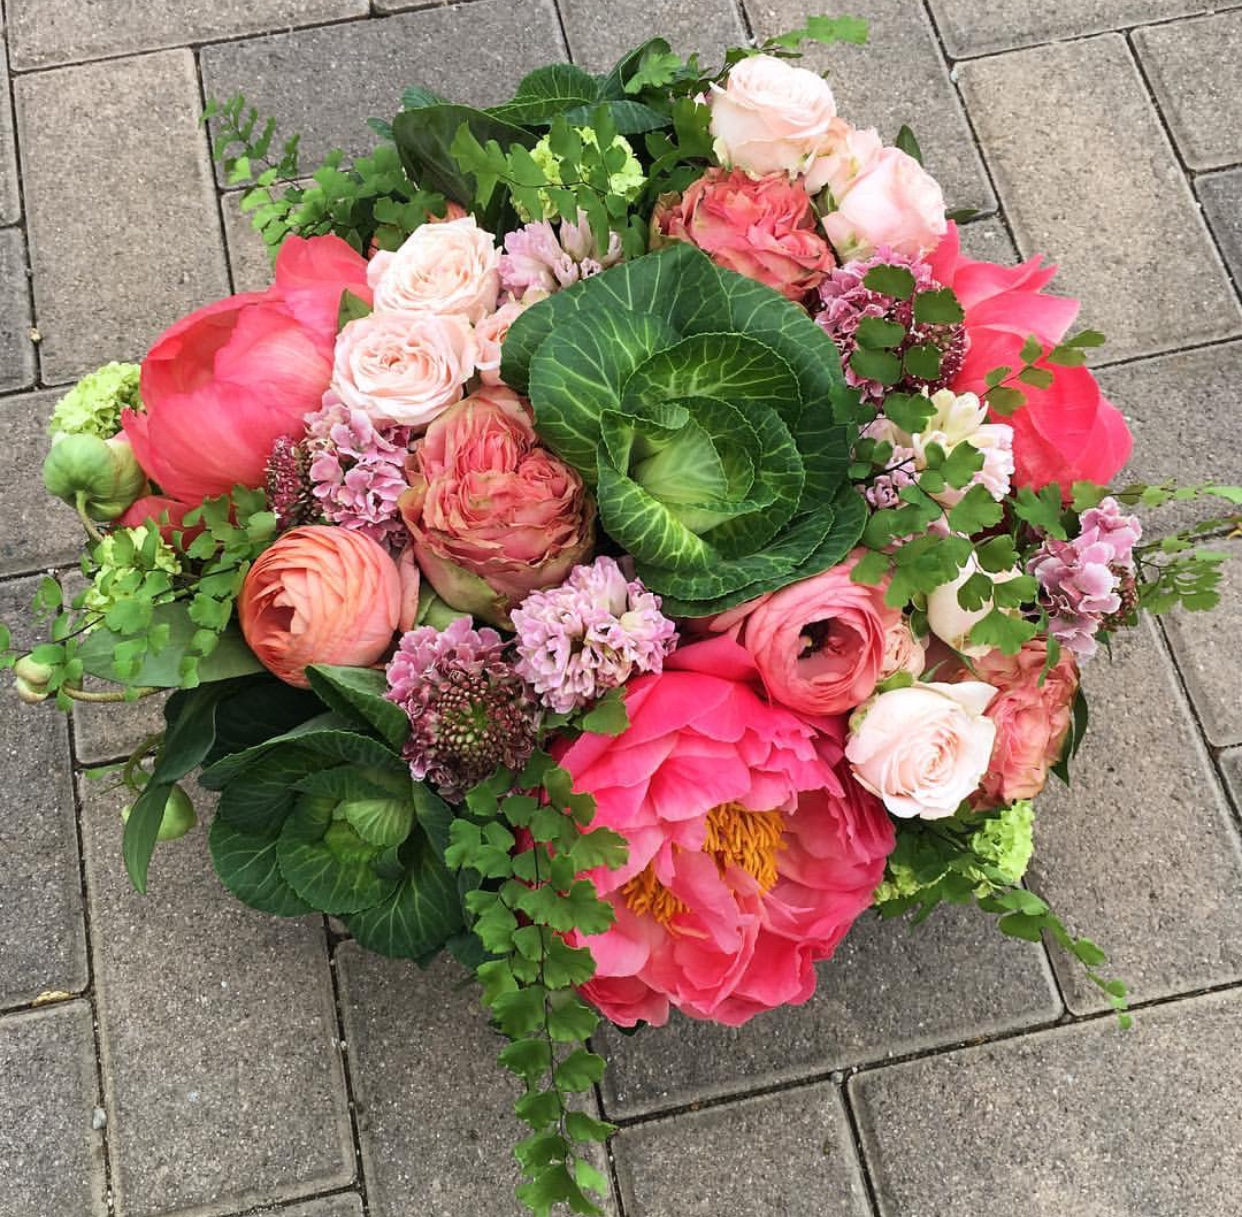 39. Peony and Cabbage Arrangement